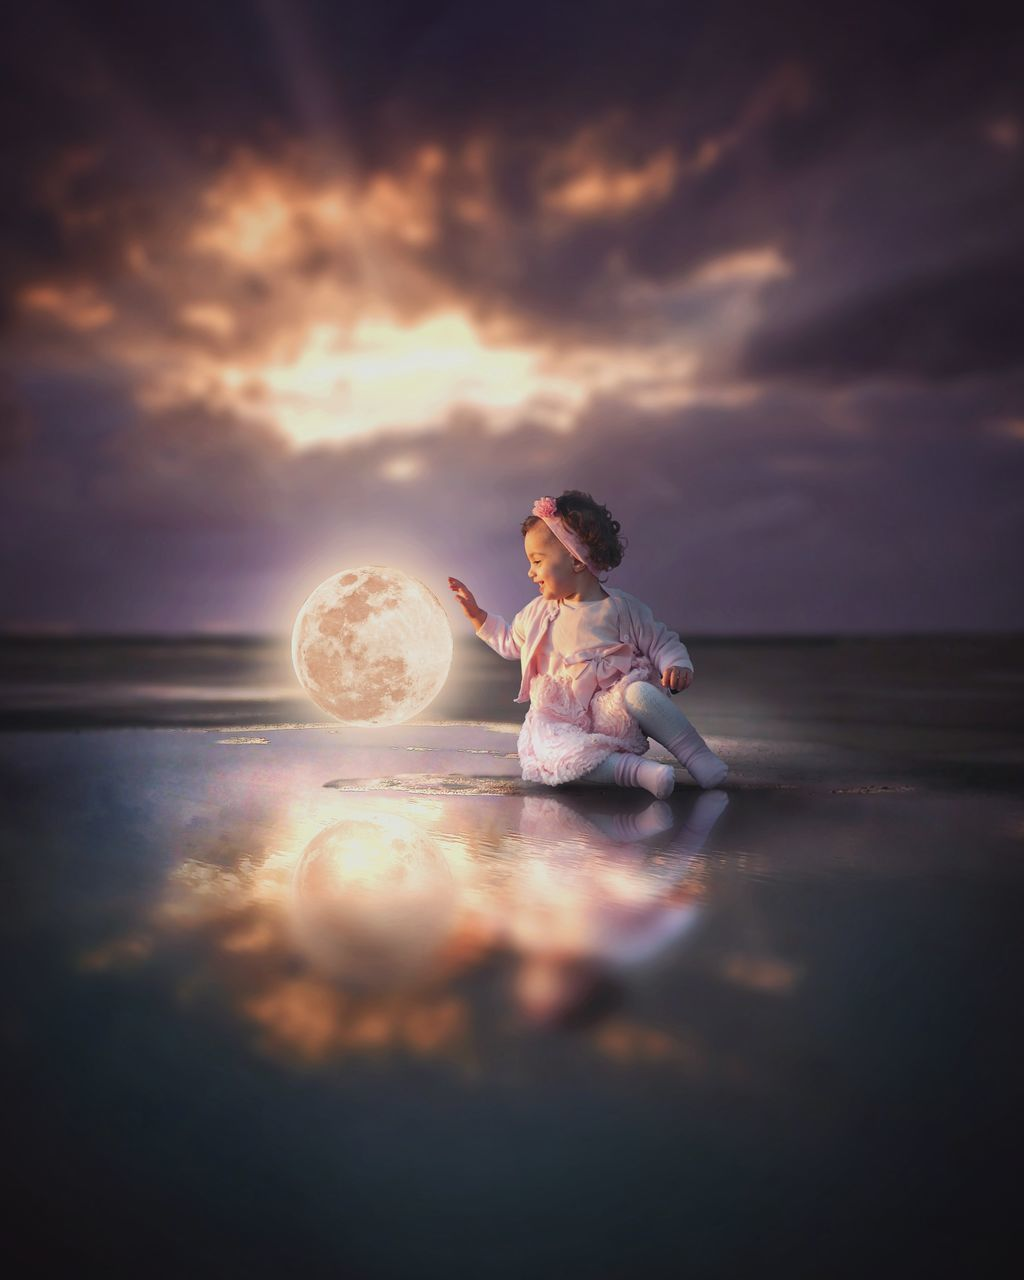 sky, water, one person, cloud - sky, scenics - nature, sunset, real people, sea, beauty in nature, nature, beach, tranquility, land, horizon over water, horizon, leisure activity, tranquil scene, idyllic, outdoors, digital composite